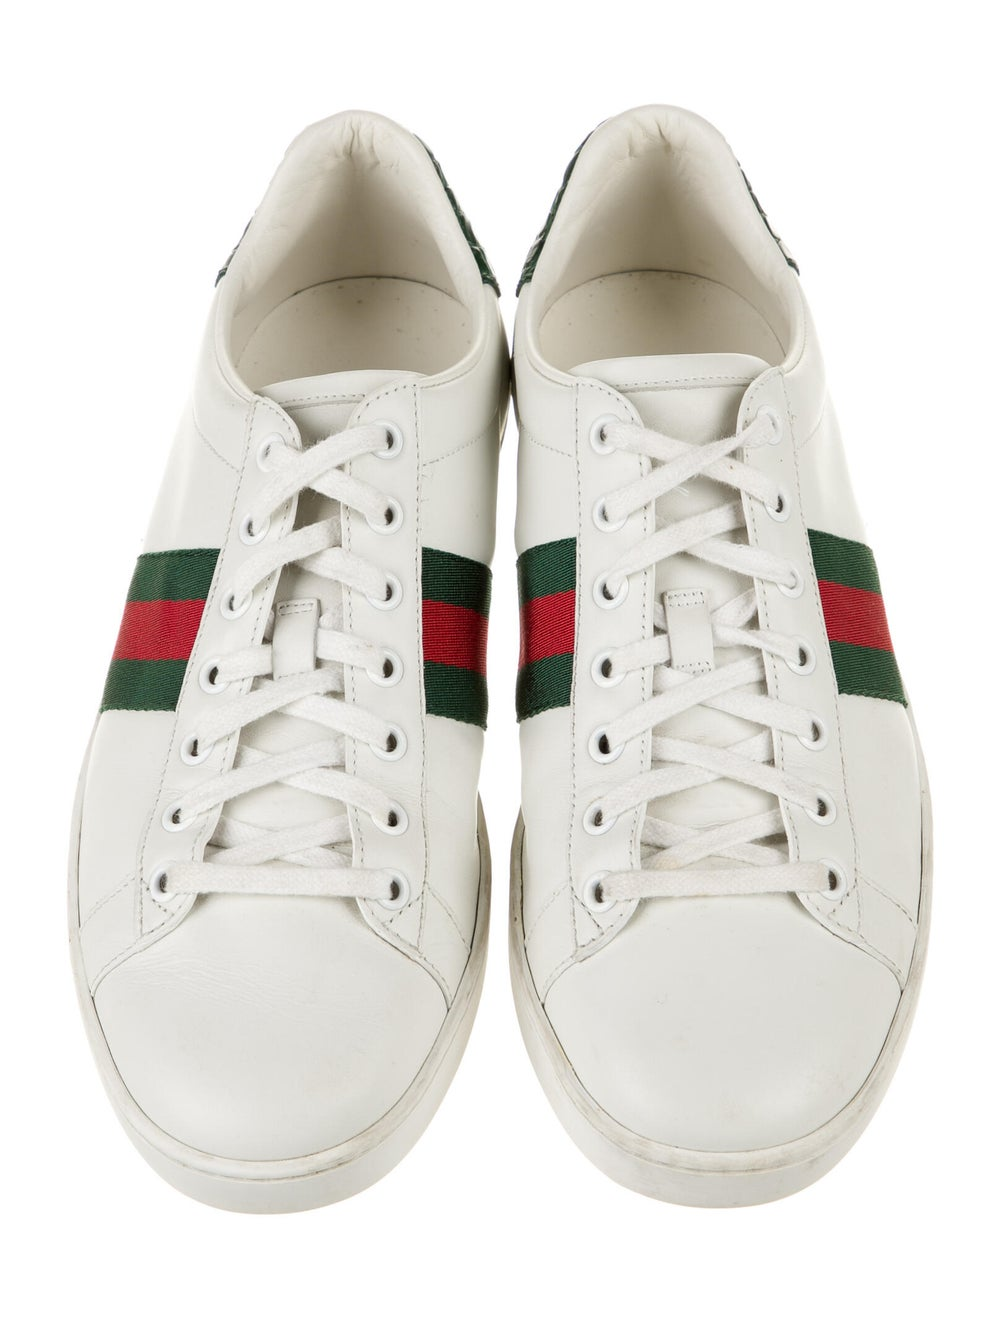 Gucci Web Accent Leather Sneakers White - image 3